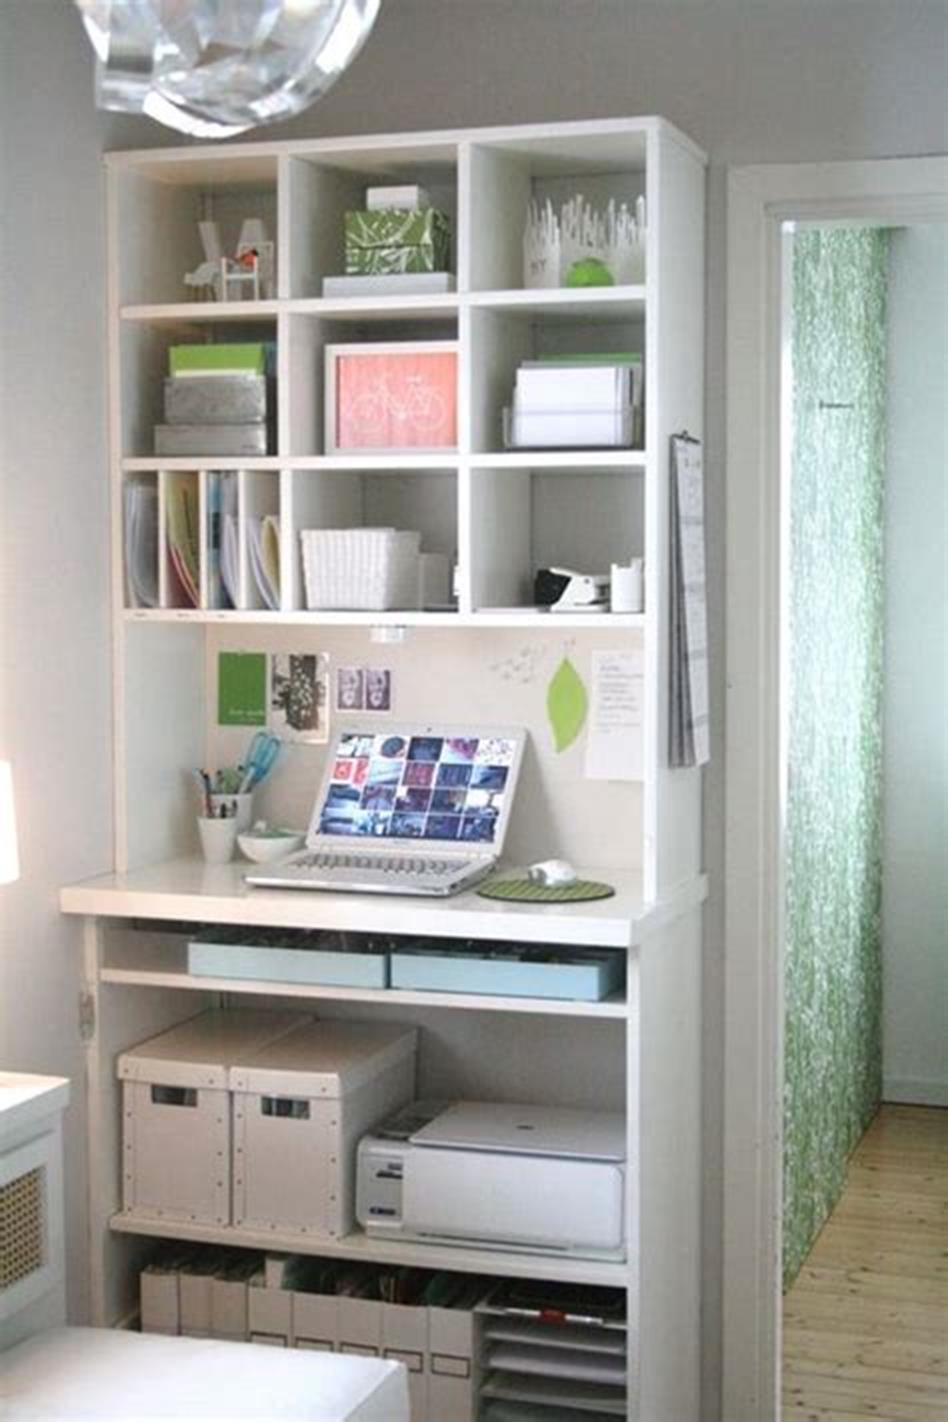 50 Best Small Space Office Decorating Ideas On a Budget 2019 14